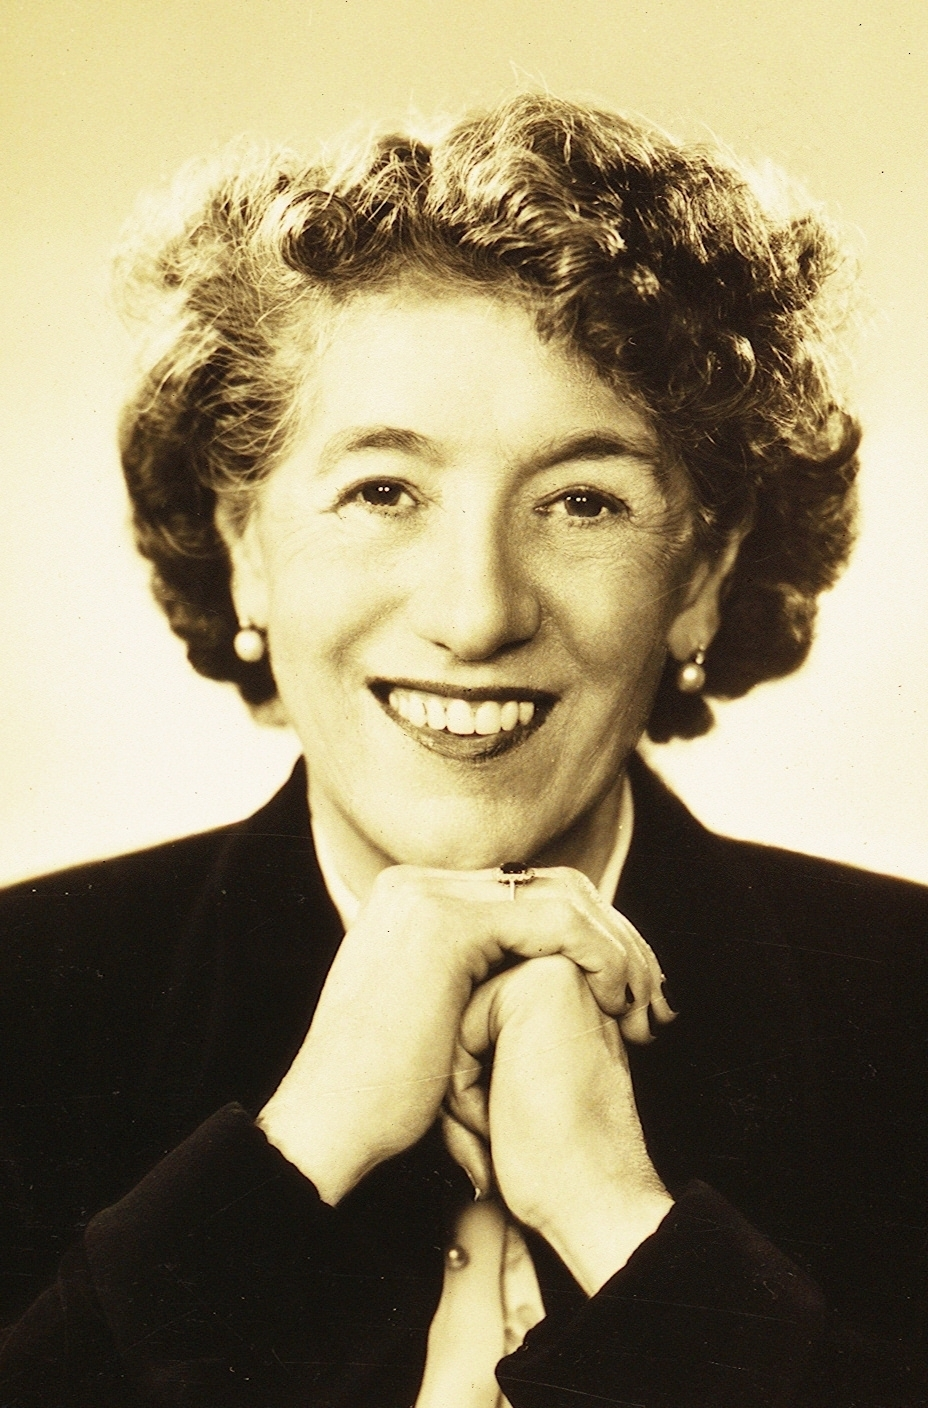 enid blyton This is a famous ,,enid blyton,, storiesenid blyton was an english children's writer also known as mary pollock she is noted for numerous series of popular books based on recurring characters and designed for different age groupsit was so ins-trusting for all.